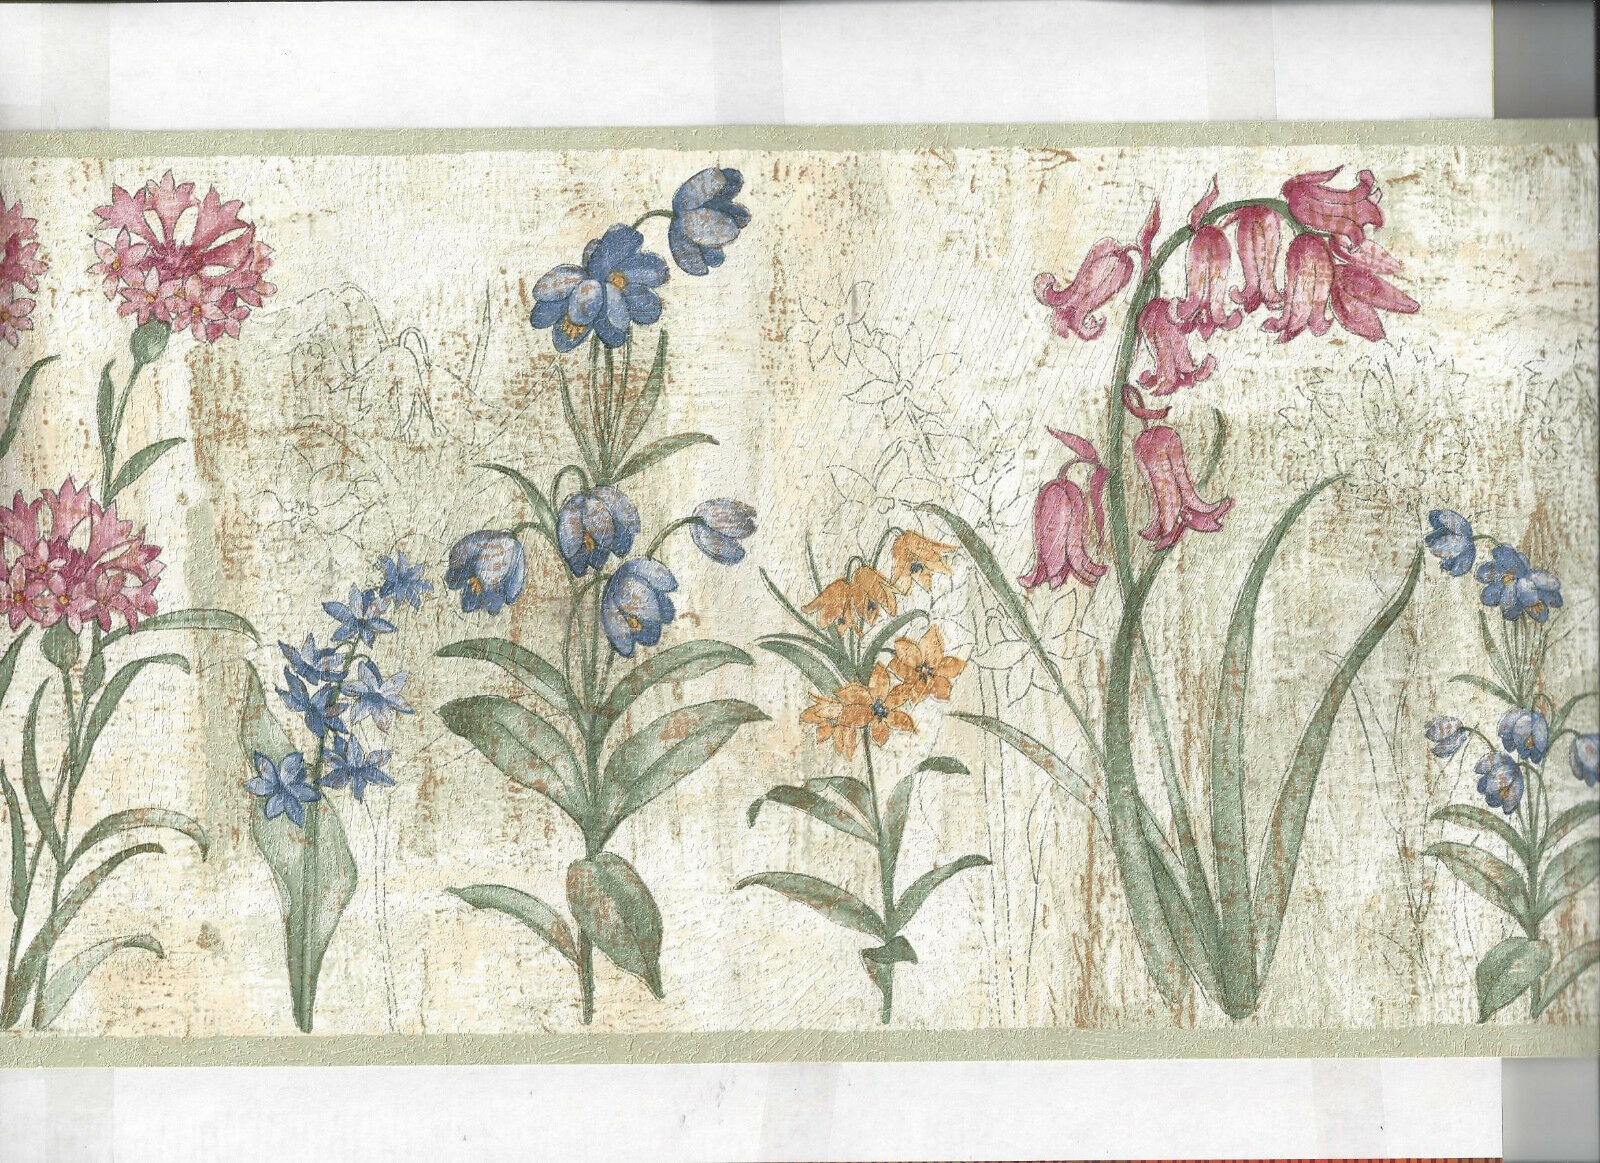 Wallpaper Border Floral Flowers Flower New Arrival For Sale Online